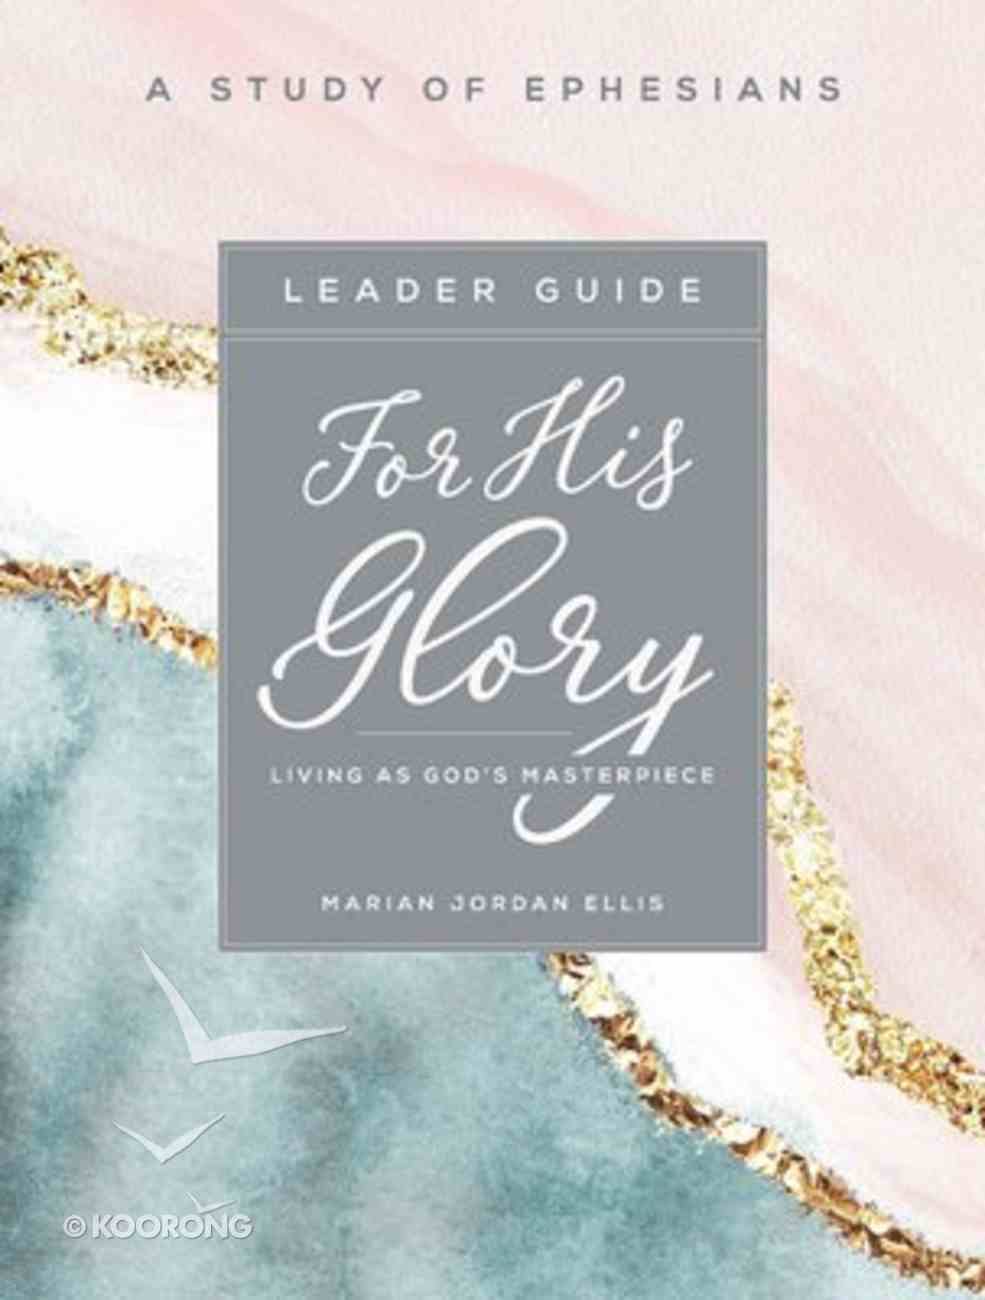 For His Glory - Women's Bible Study: Living as God's Masterpiece (Leader Guide) Paperback